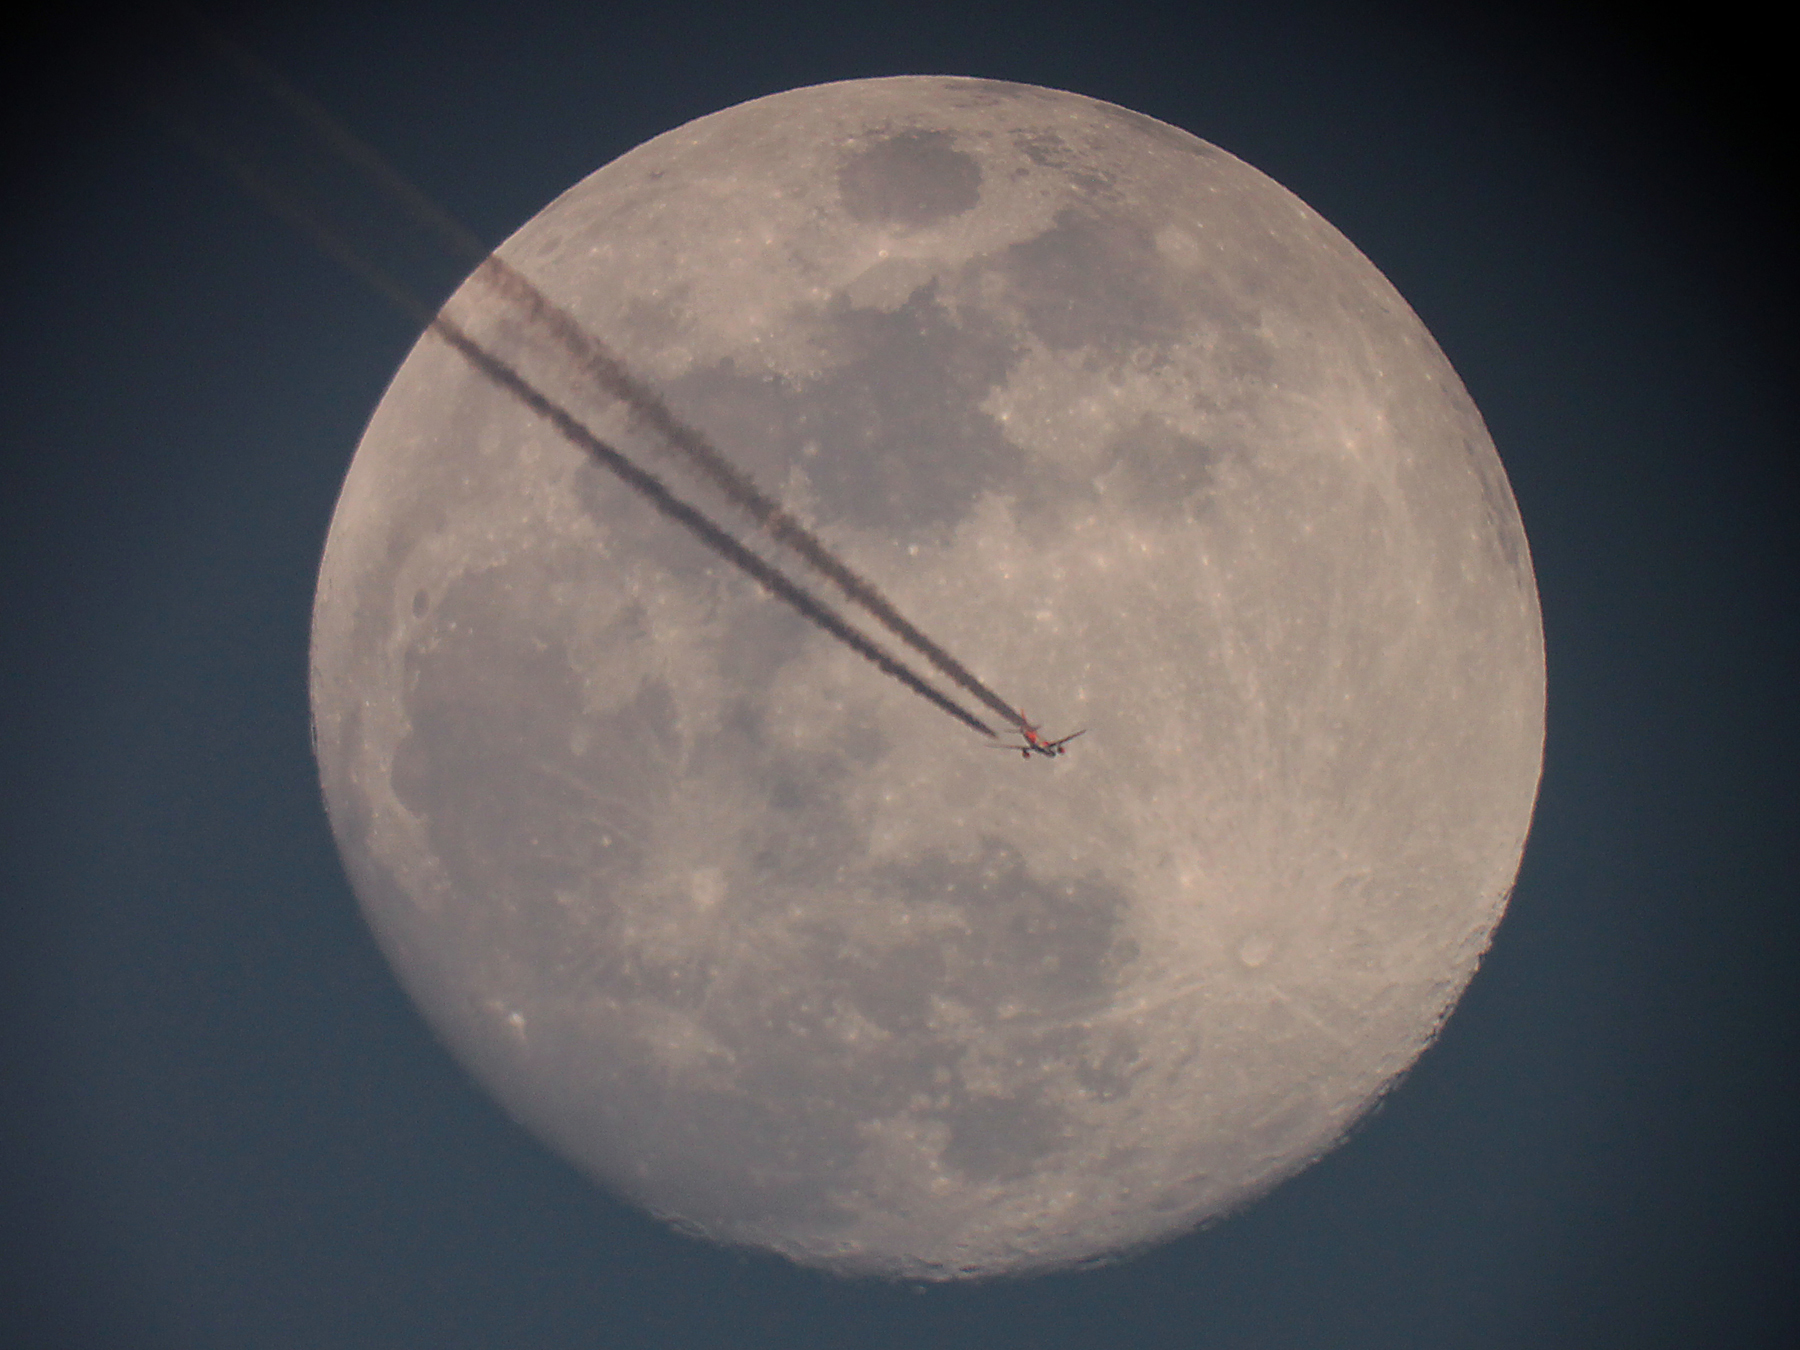 La Lune et l'avion - 09 avril 2017 à 20h13